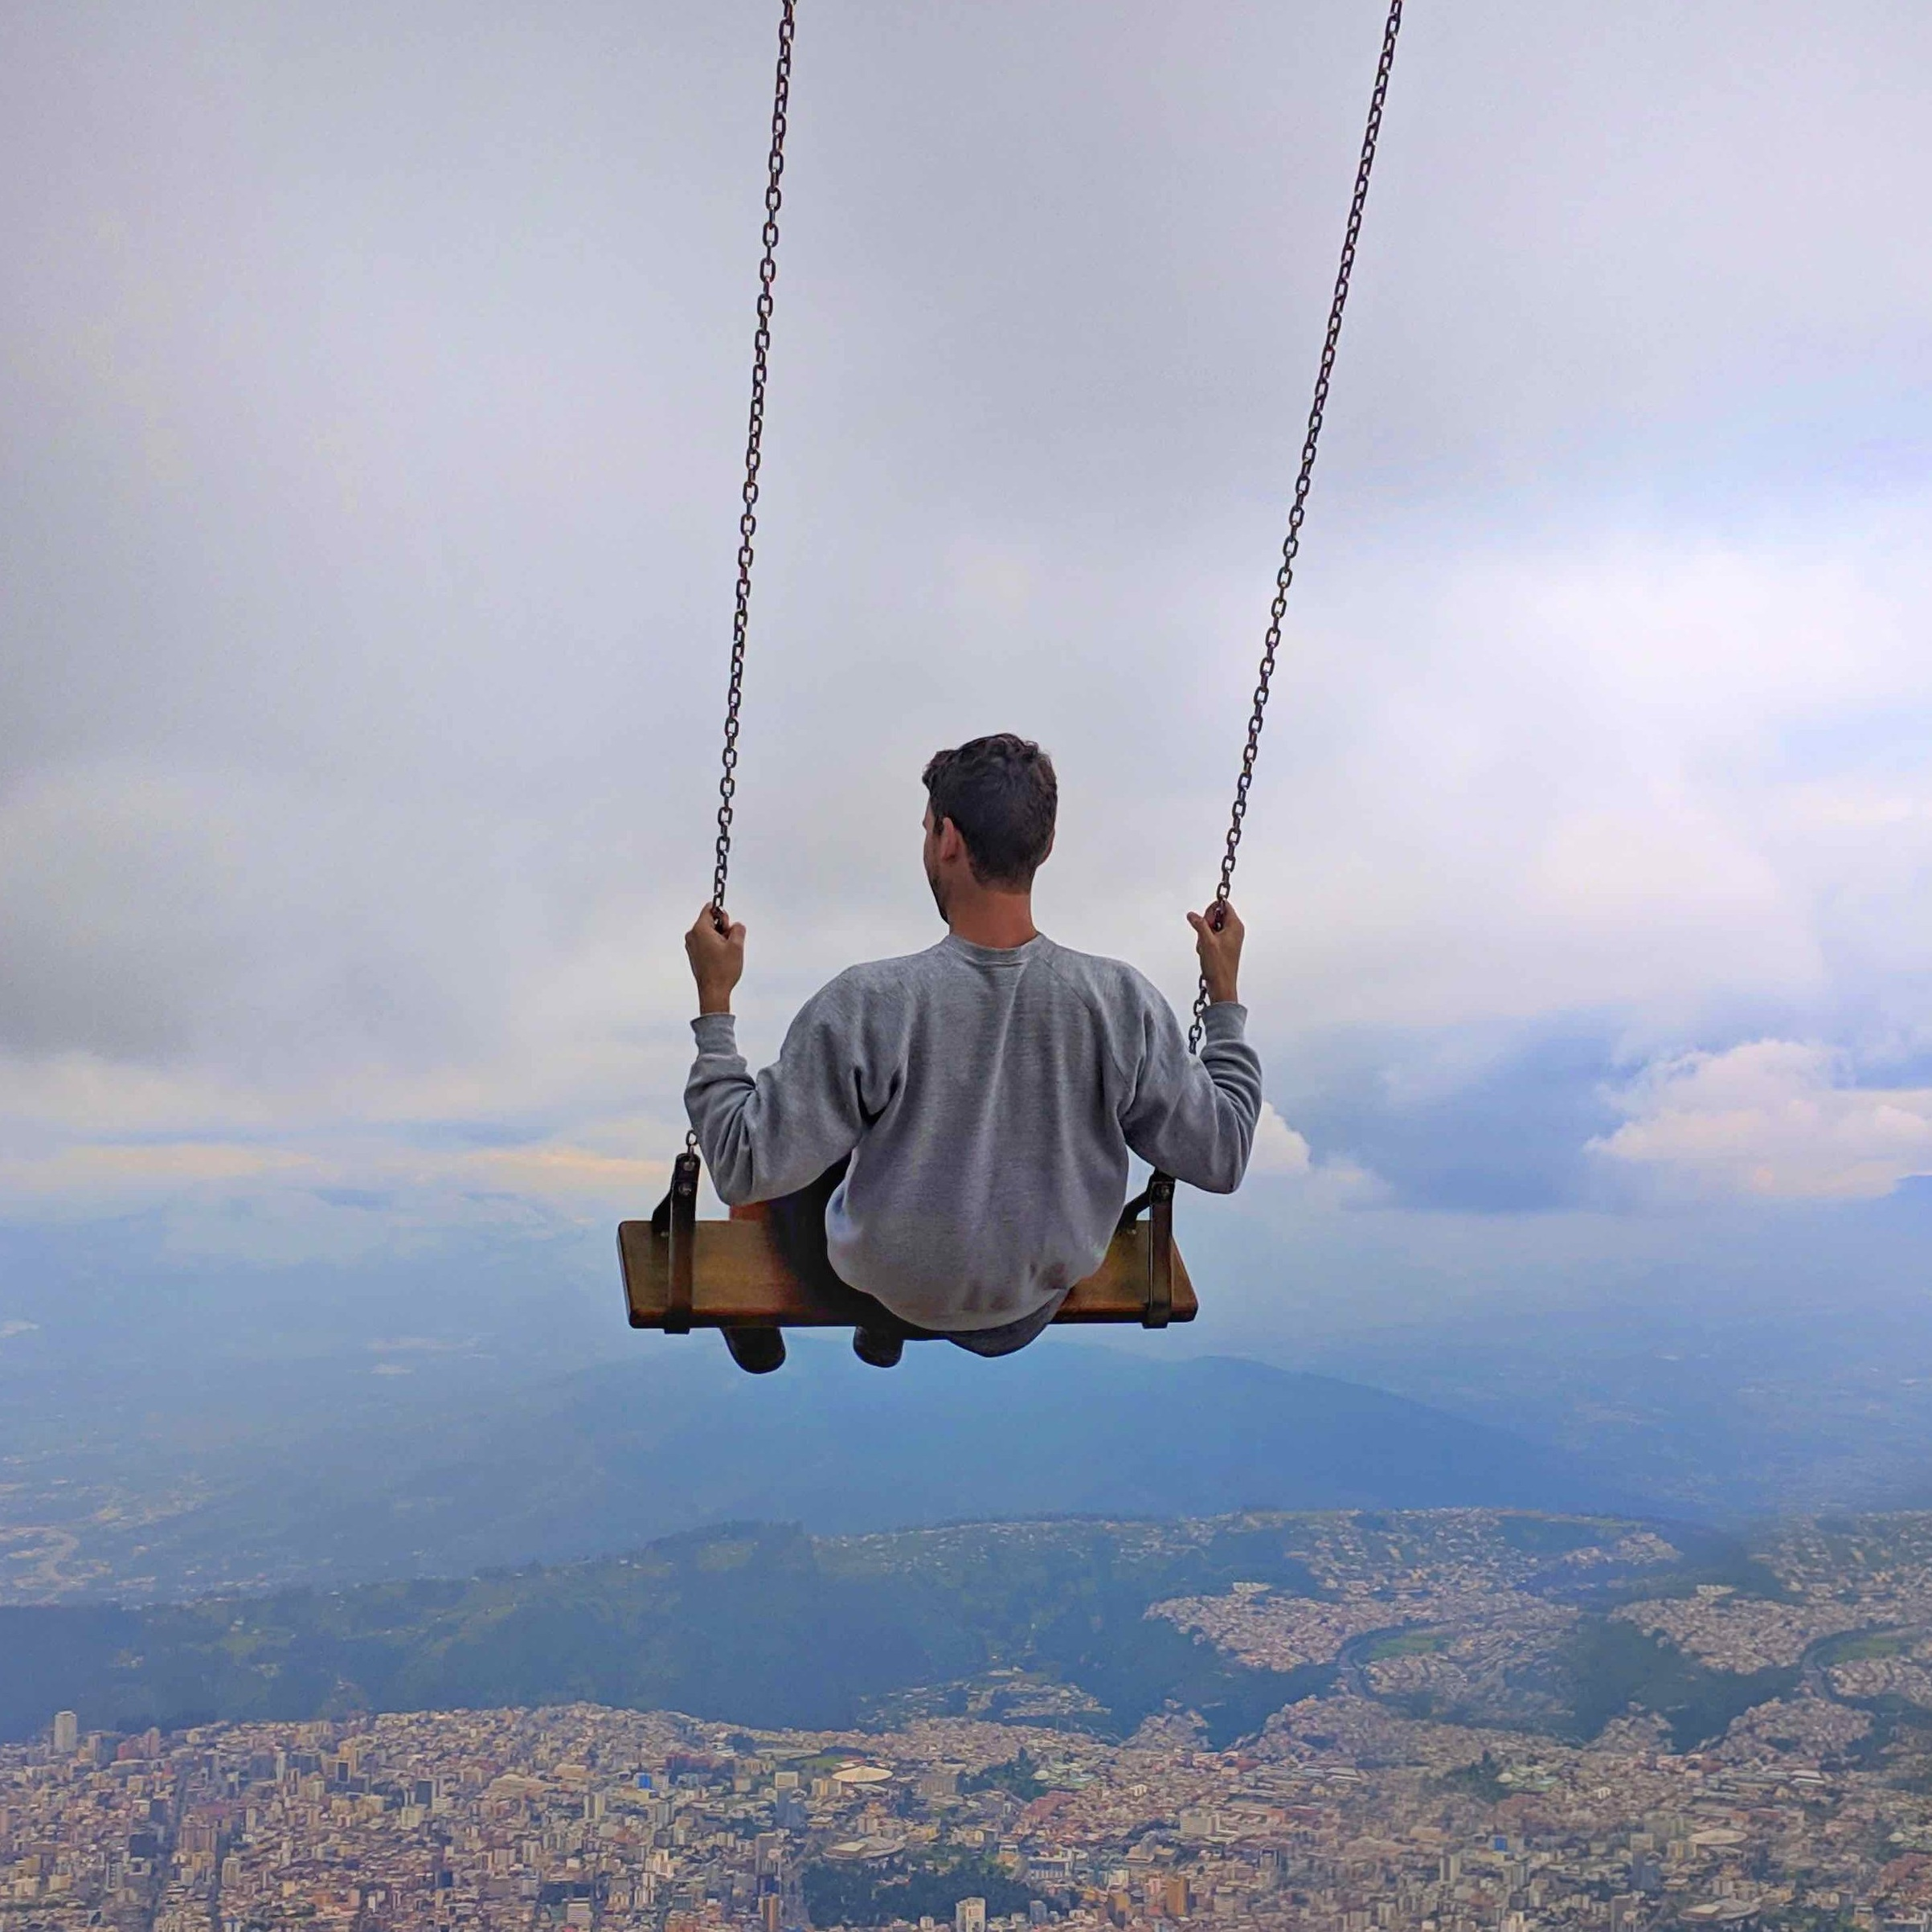 Phil swinging off the edge of the world :)